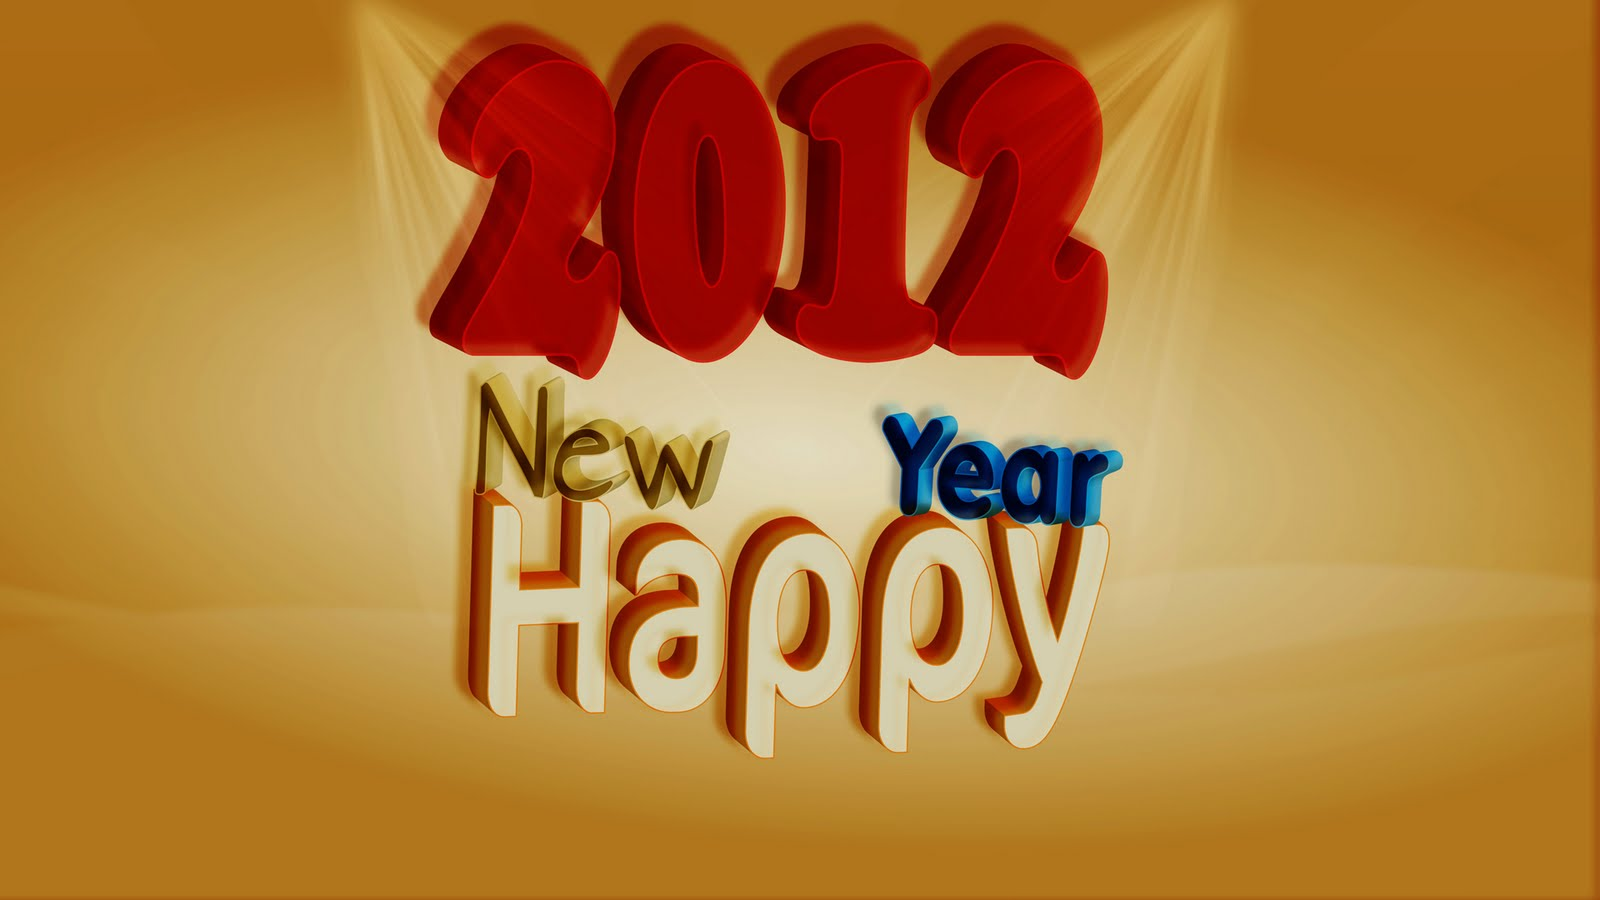 http://3.bp.blogspot.com/-vm0gdggTd8Y/Tv6fHdezEHI/AAAAAAAAAAg/a9bhd6bKrSI/s1600/2012-Happy-New-Year-wallpaper.jpg